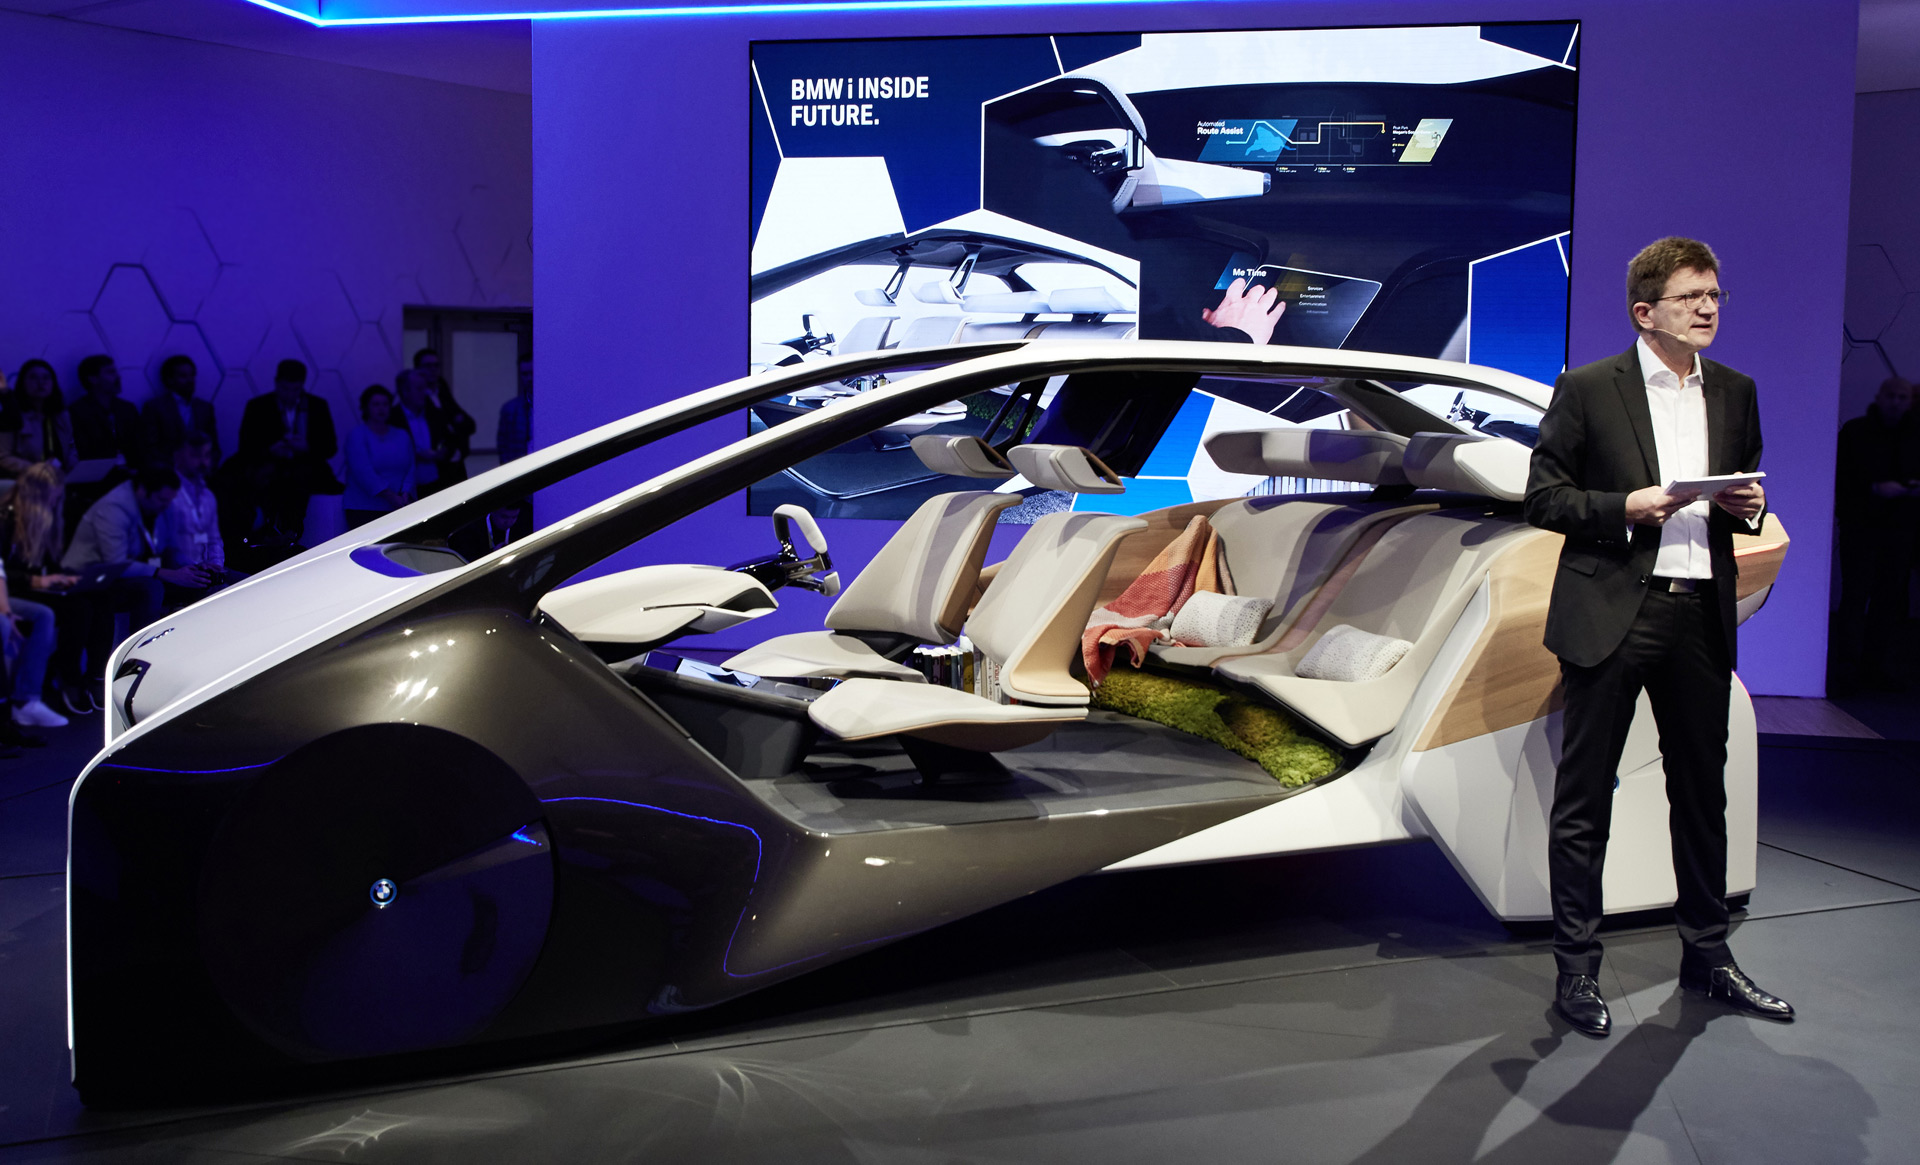 bmw previews next gen interior complete with hologram technology. Black Bedroom Furniture Sets. Home Design Ideas